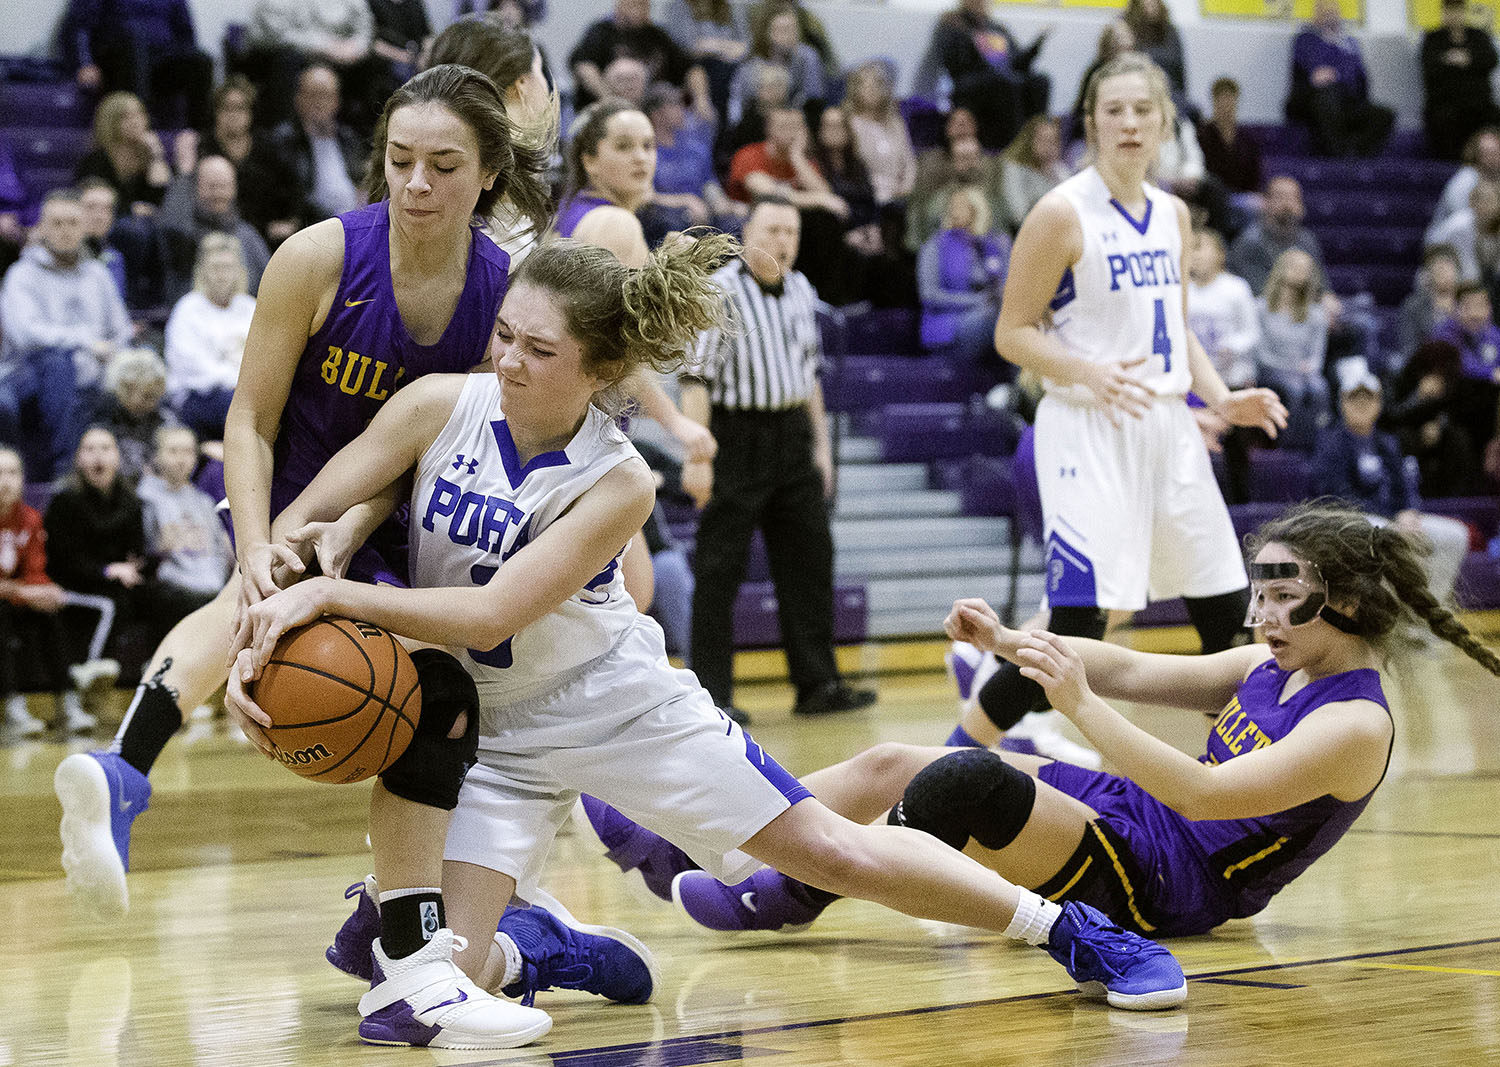 PORTA's Kyia Privia wrests the ball away from Williamsville's Addison Woods during the 2A Williamsville Regional at Williamsville High School Thursday, February 7, 2019. [Ted Schurter/The State Journal-Register]